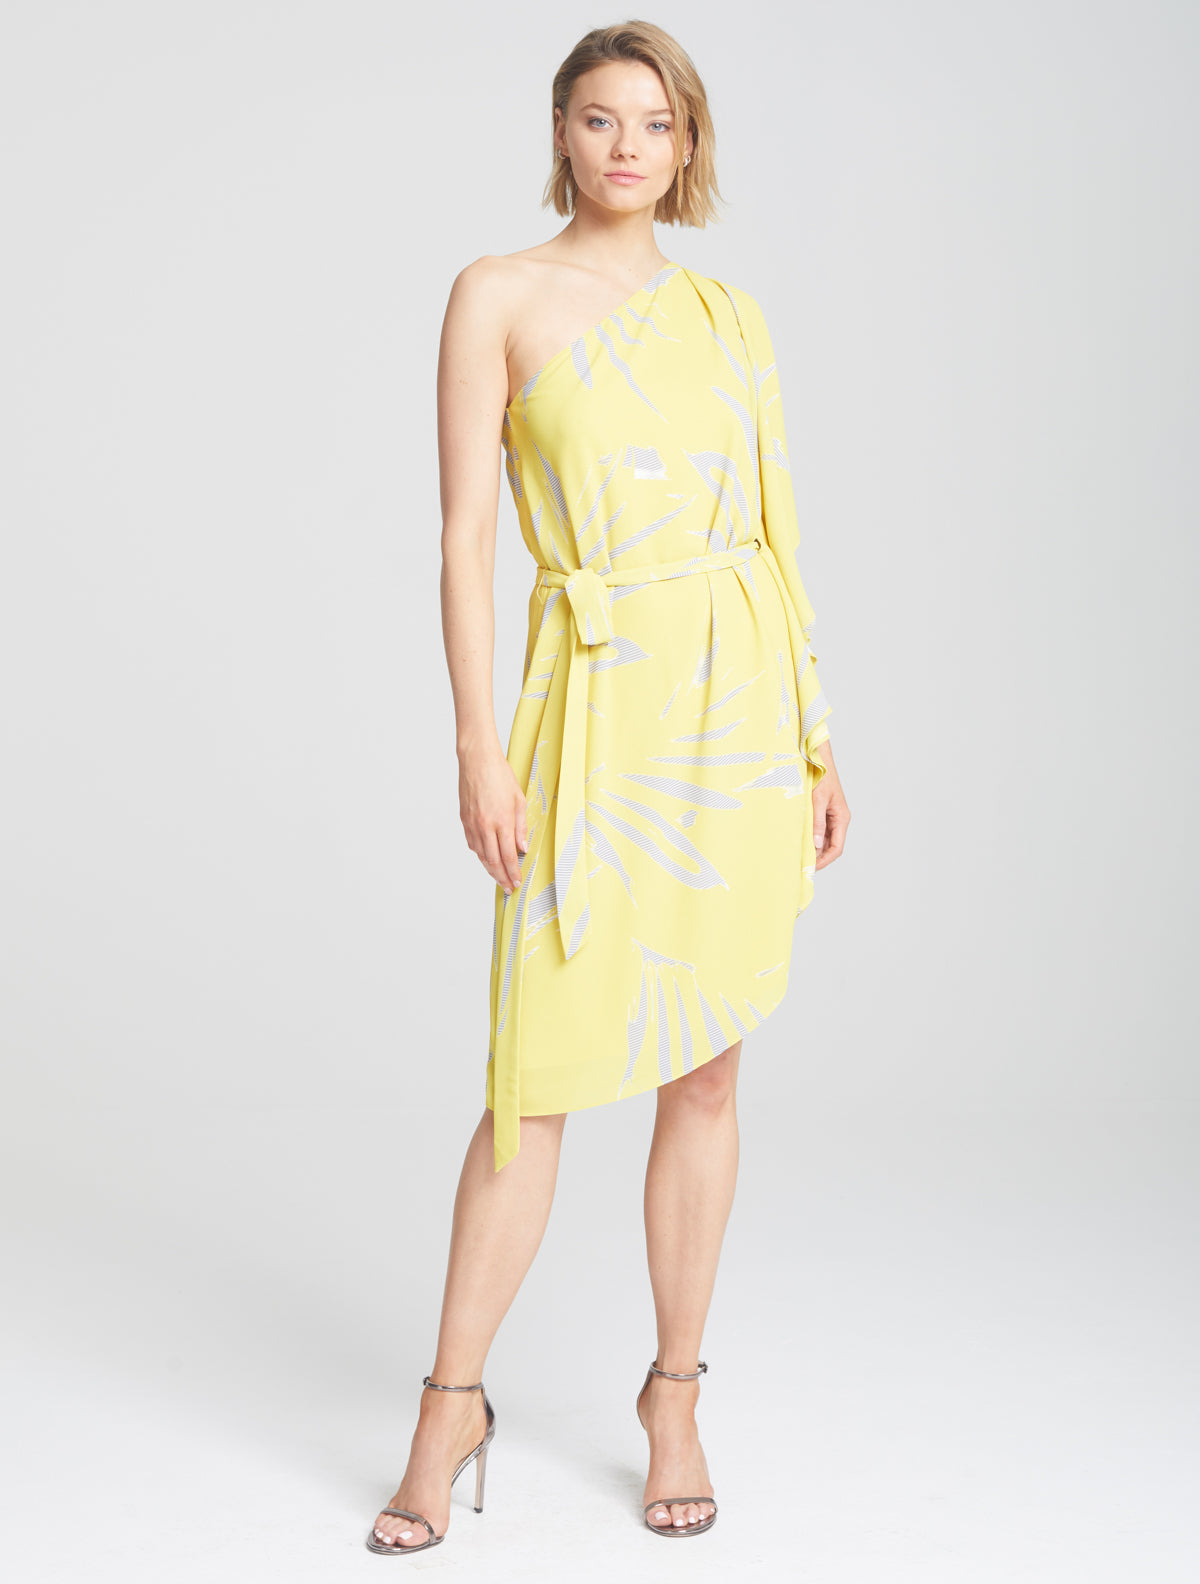 Asymmetric Print Dress - Halston